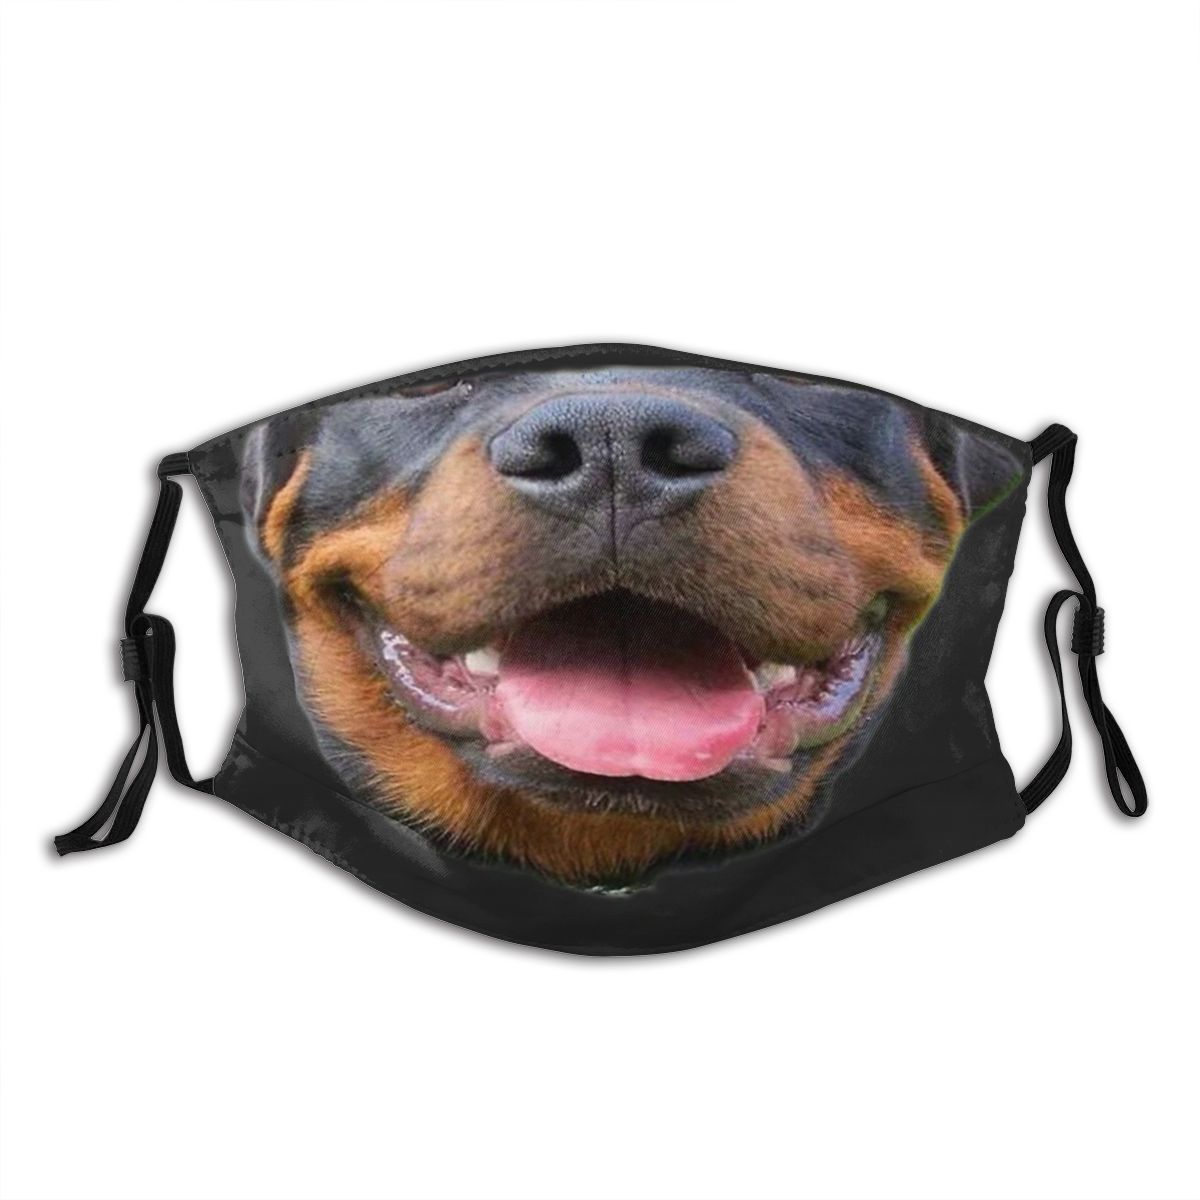 Rottweiler Doggo Reusable Mouth Face Mask Anti Bacterial Dust Mask With Filters Protection Mask Respirator Mouth Muffle